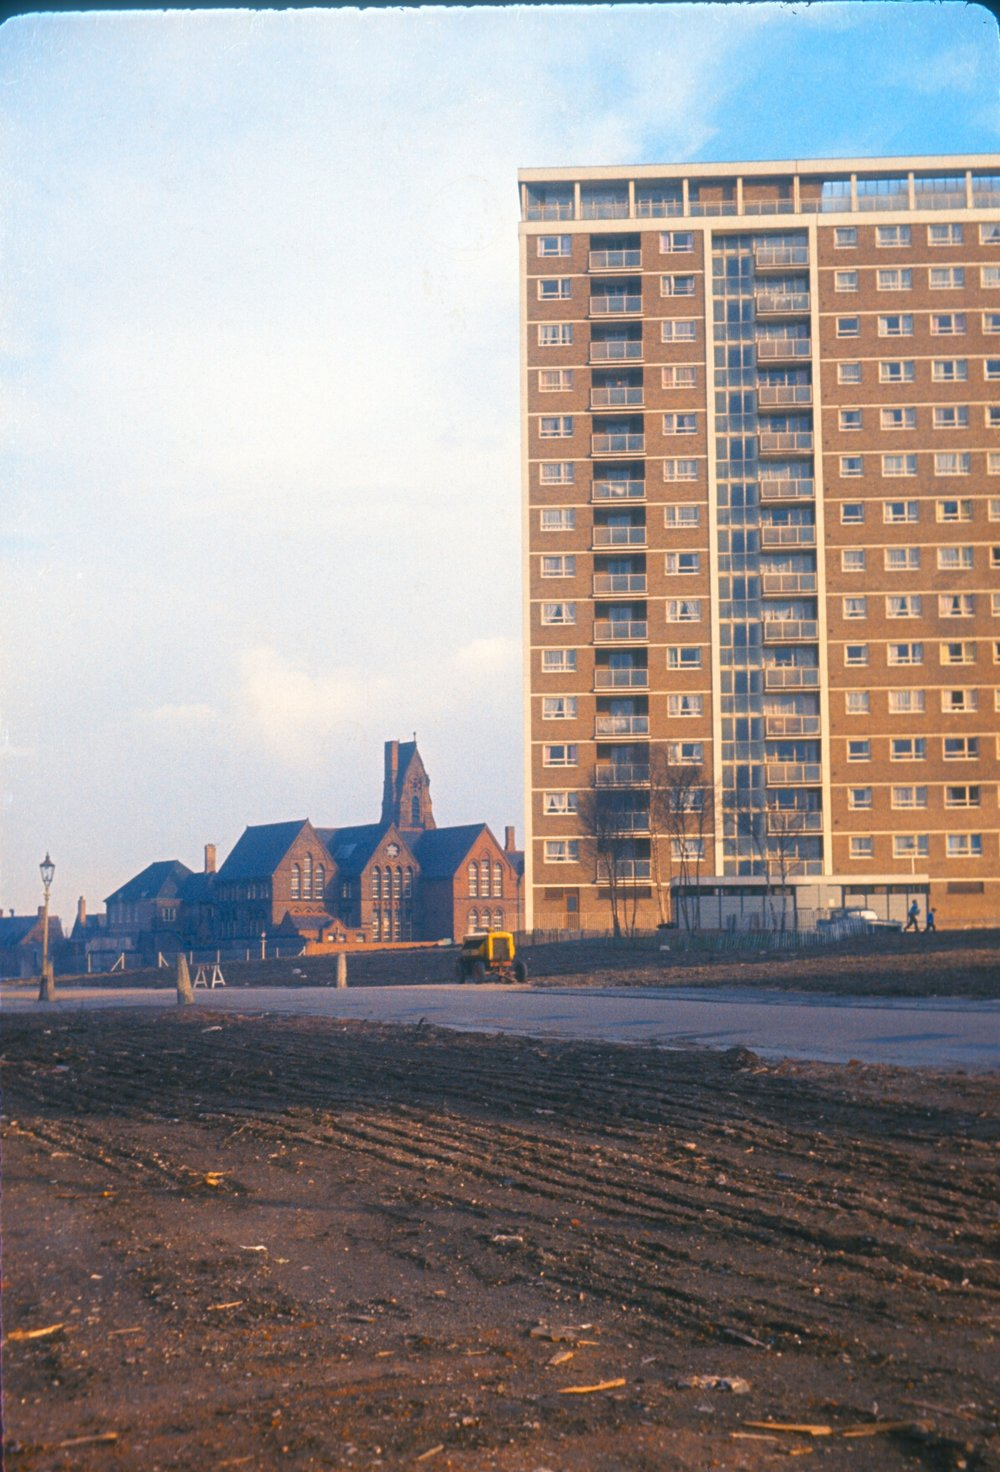 Newtown, Old School and New Flats, New John Street West. 28th March 1967